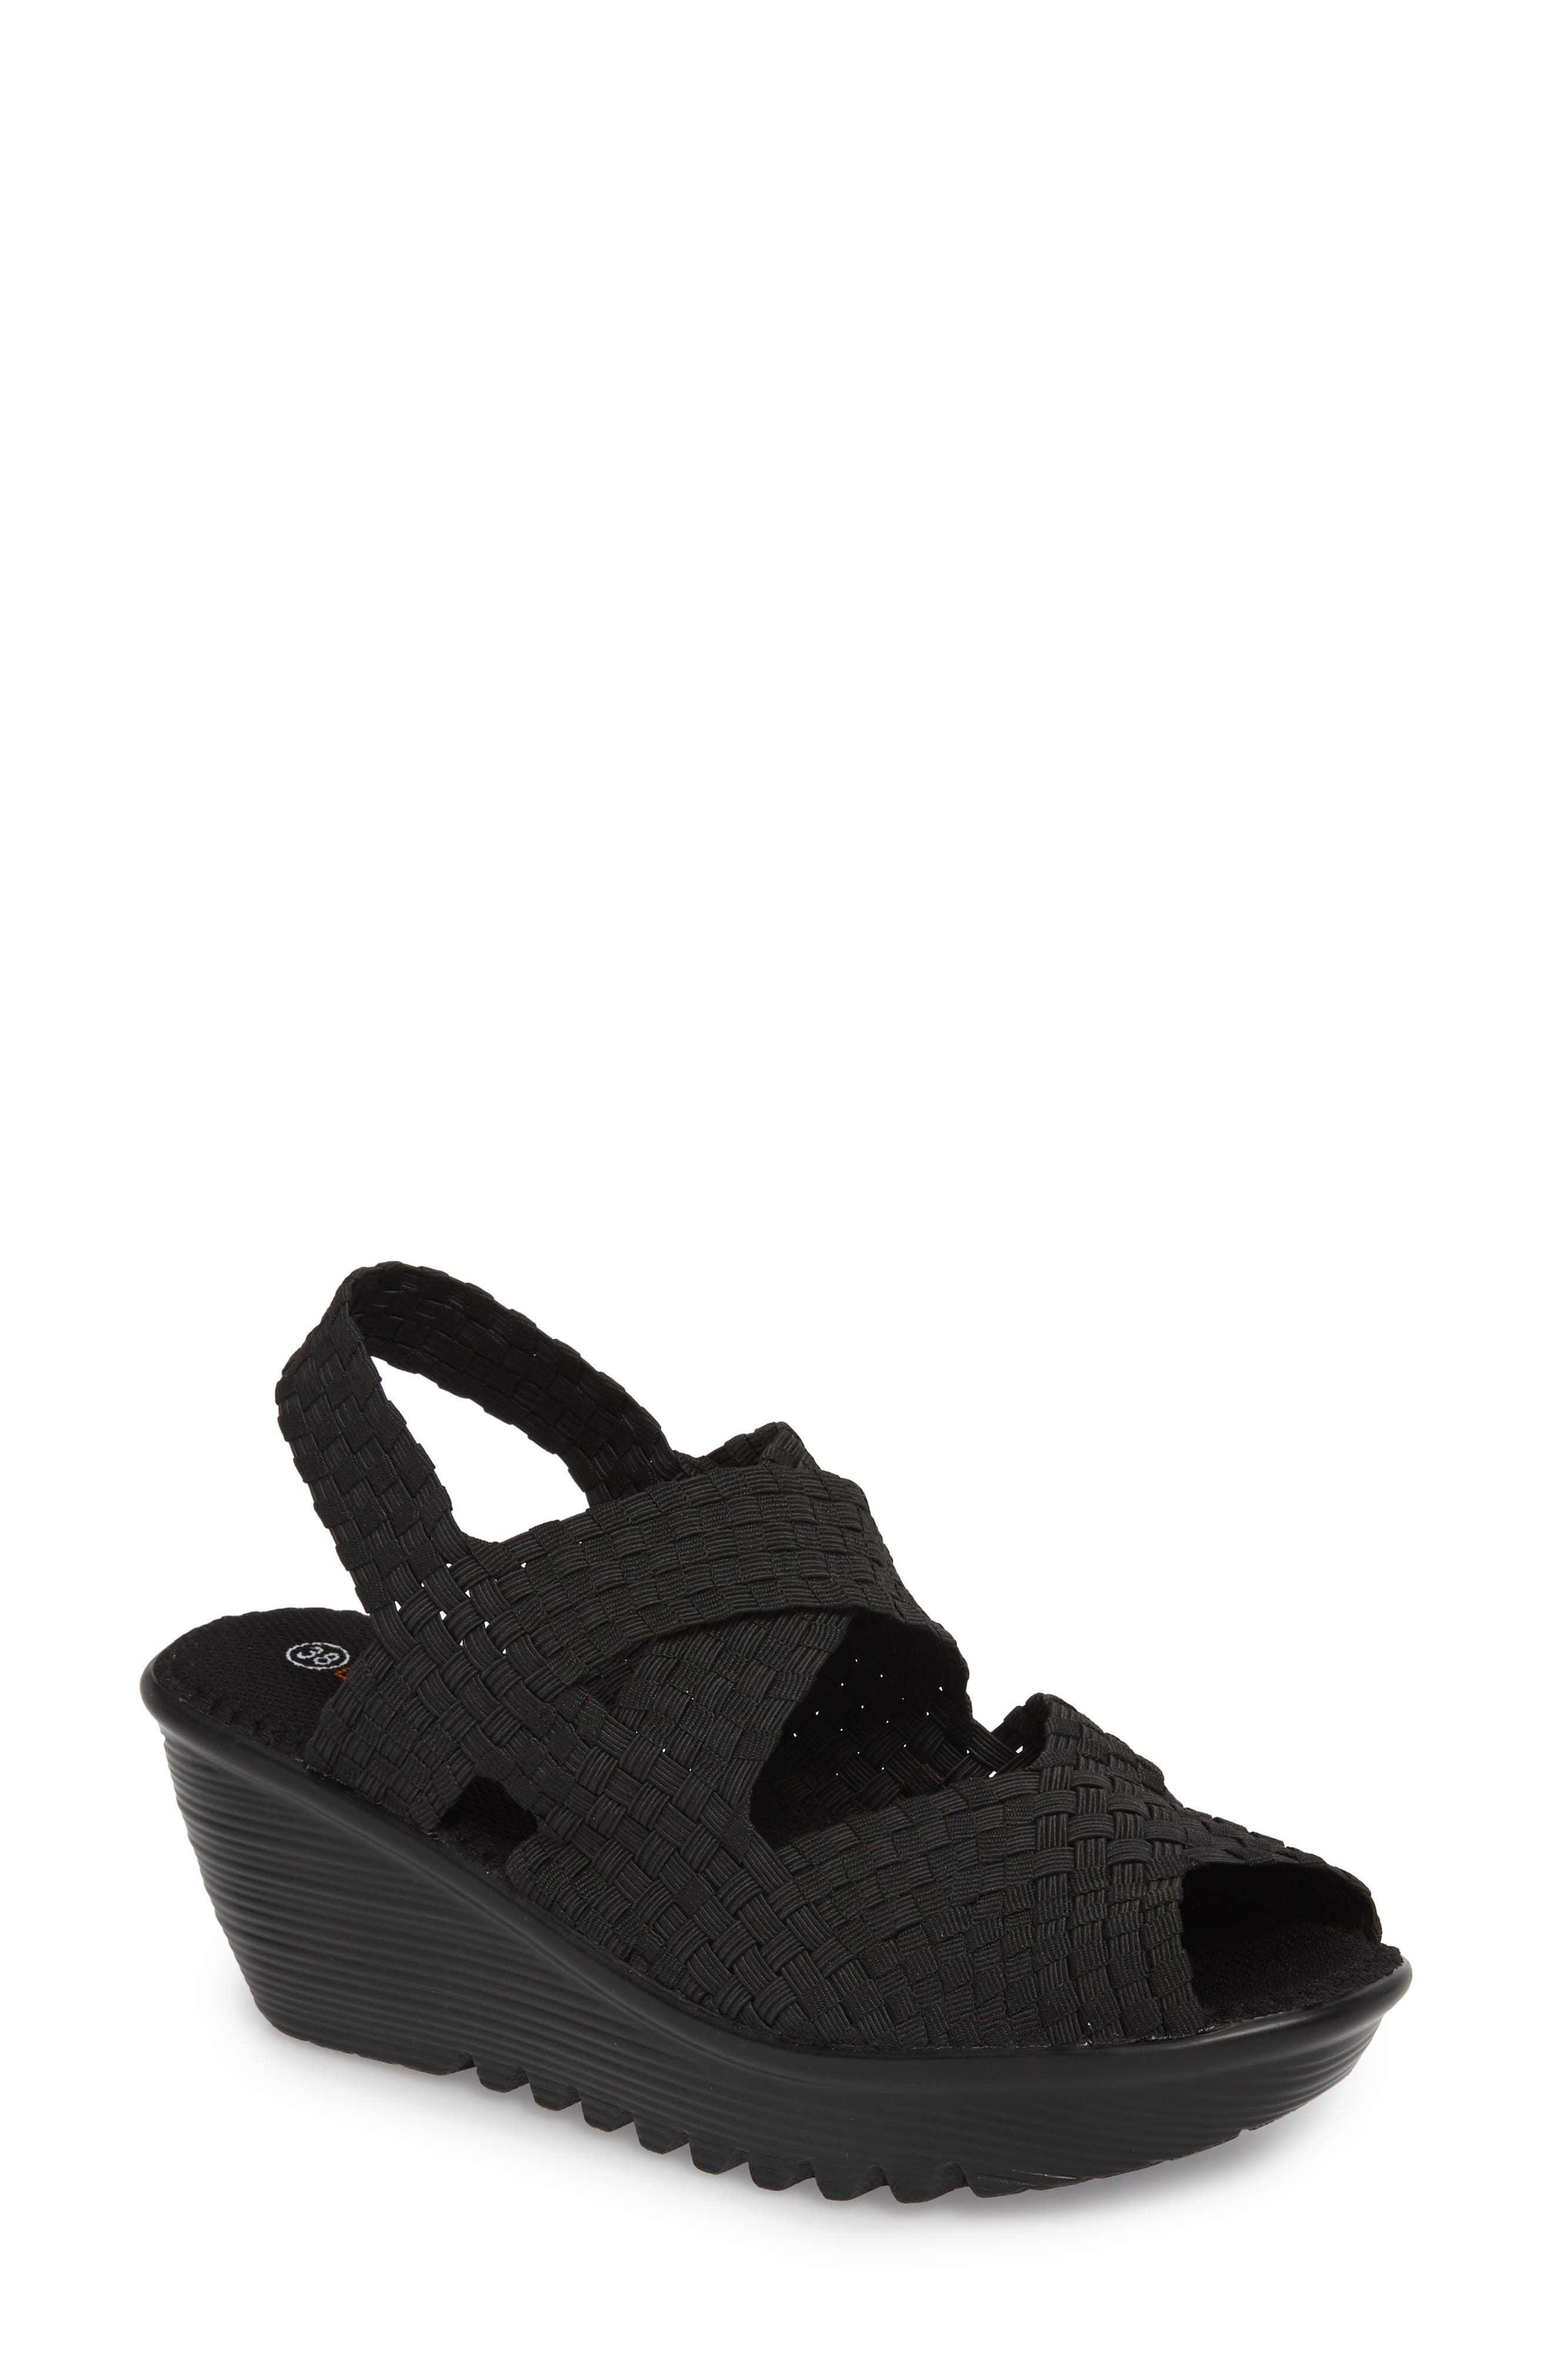 Jessica Wedge Sandal,                         Main,                         color, Black Fabric